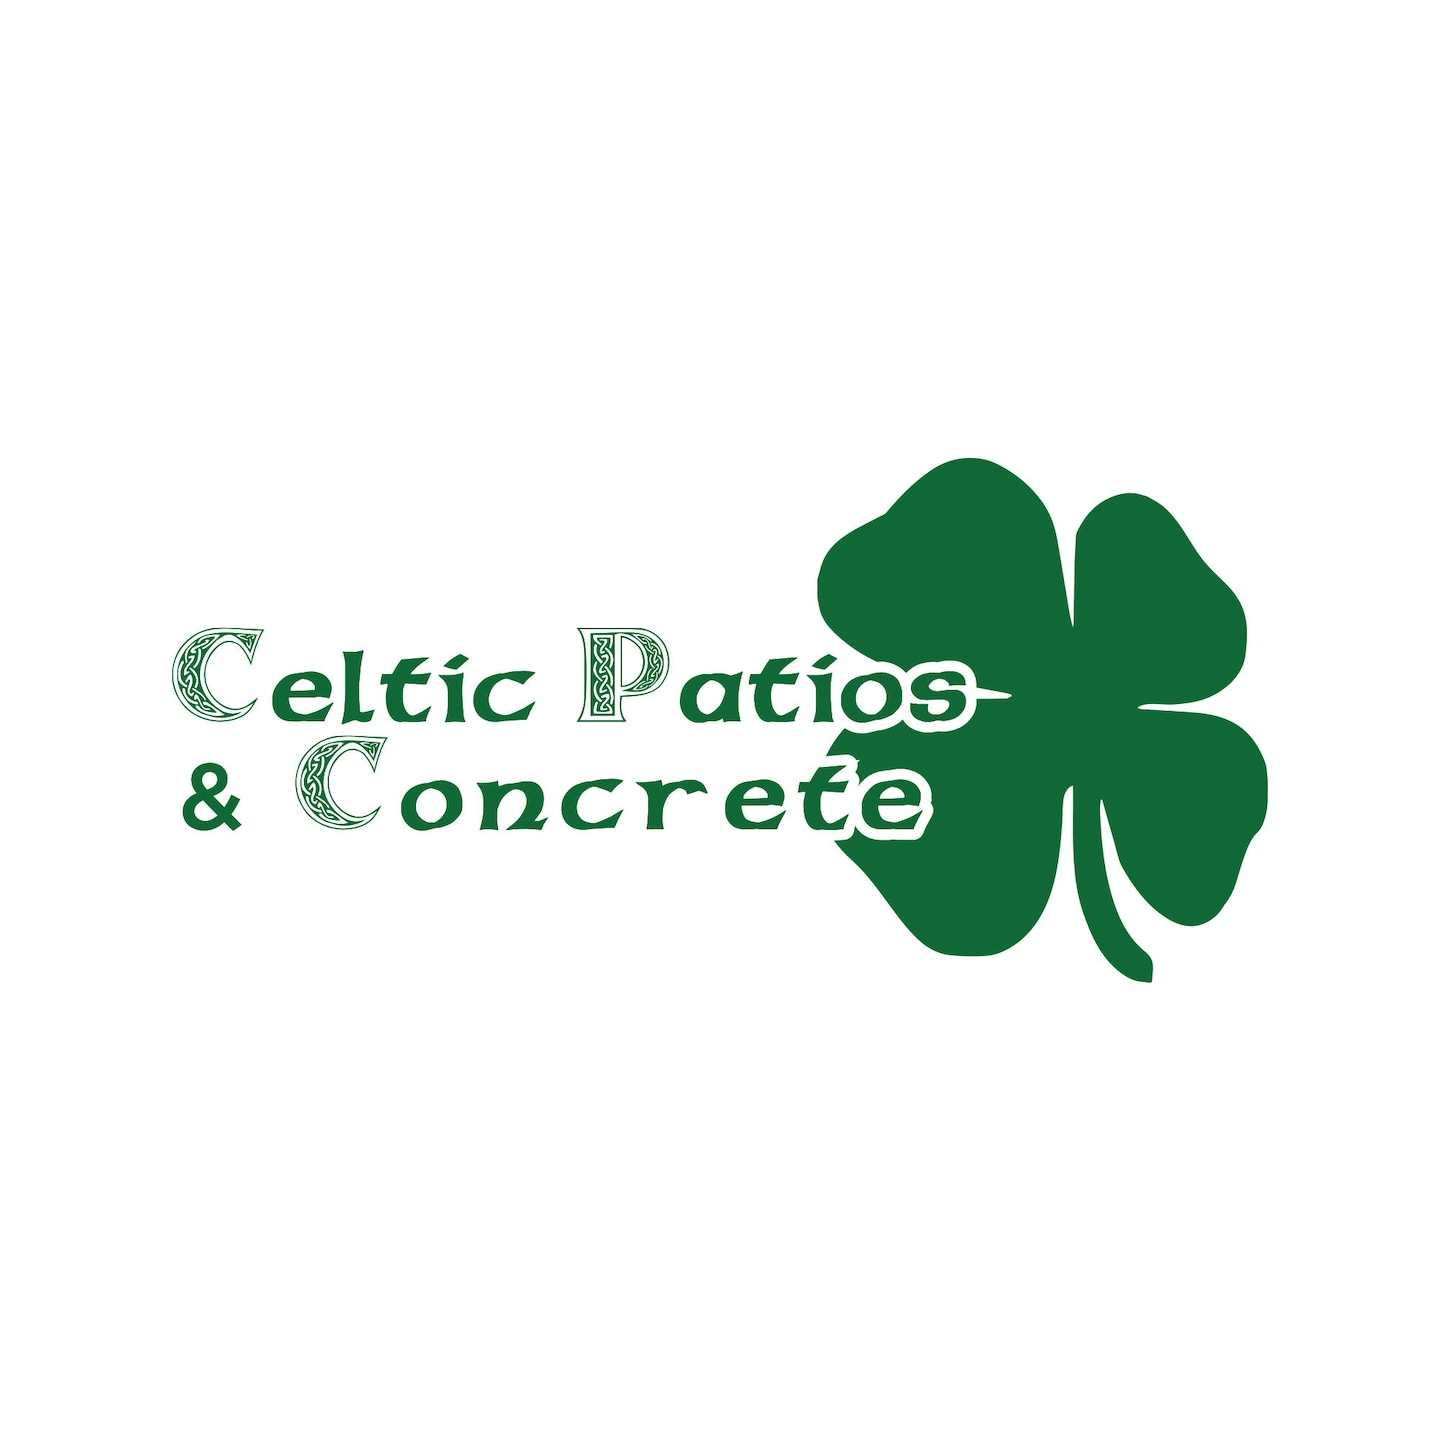 Celtic Patios and Concrete